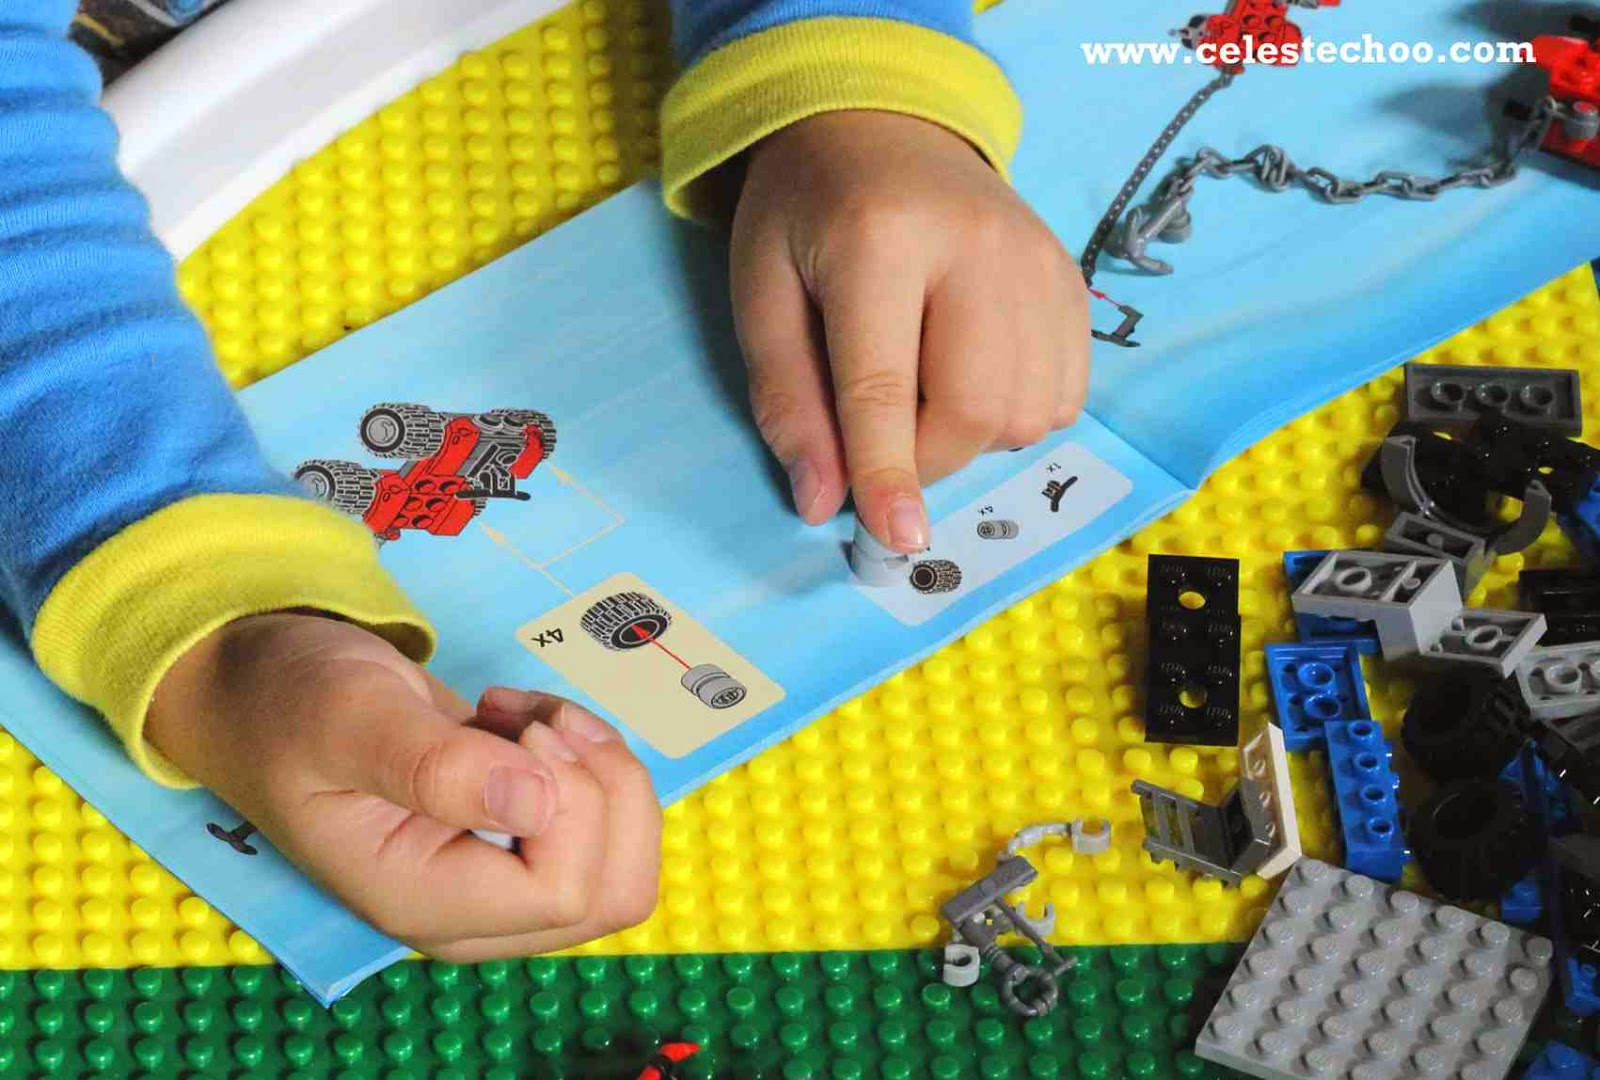 kids-hands-fixing-lego-city-police-truck-toy